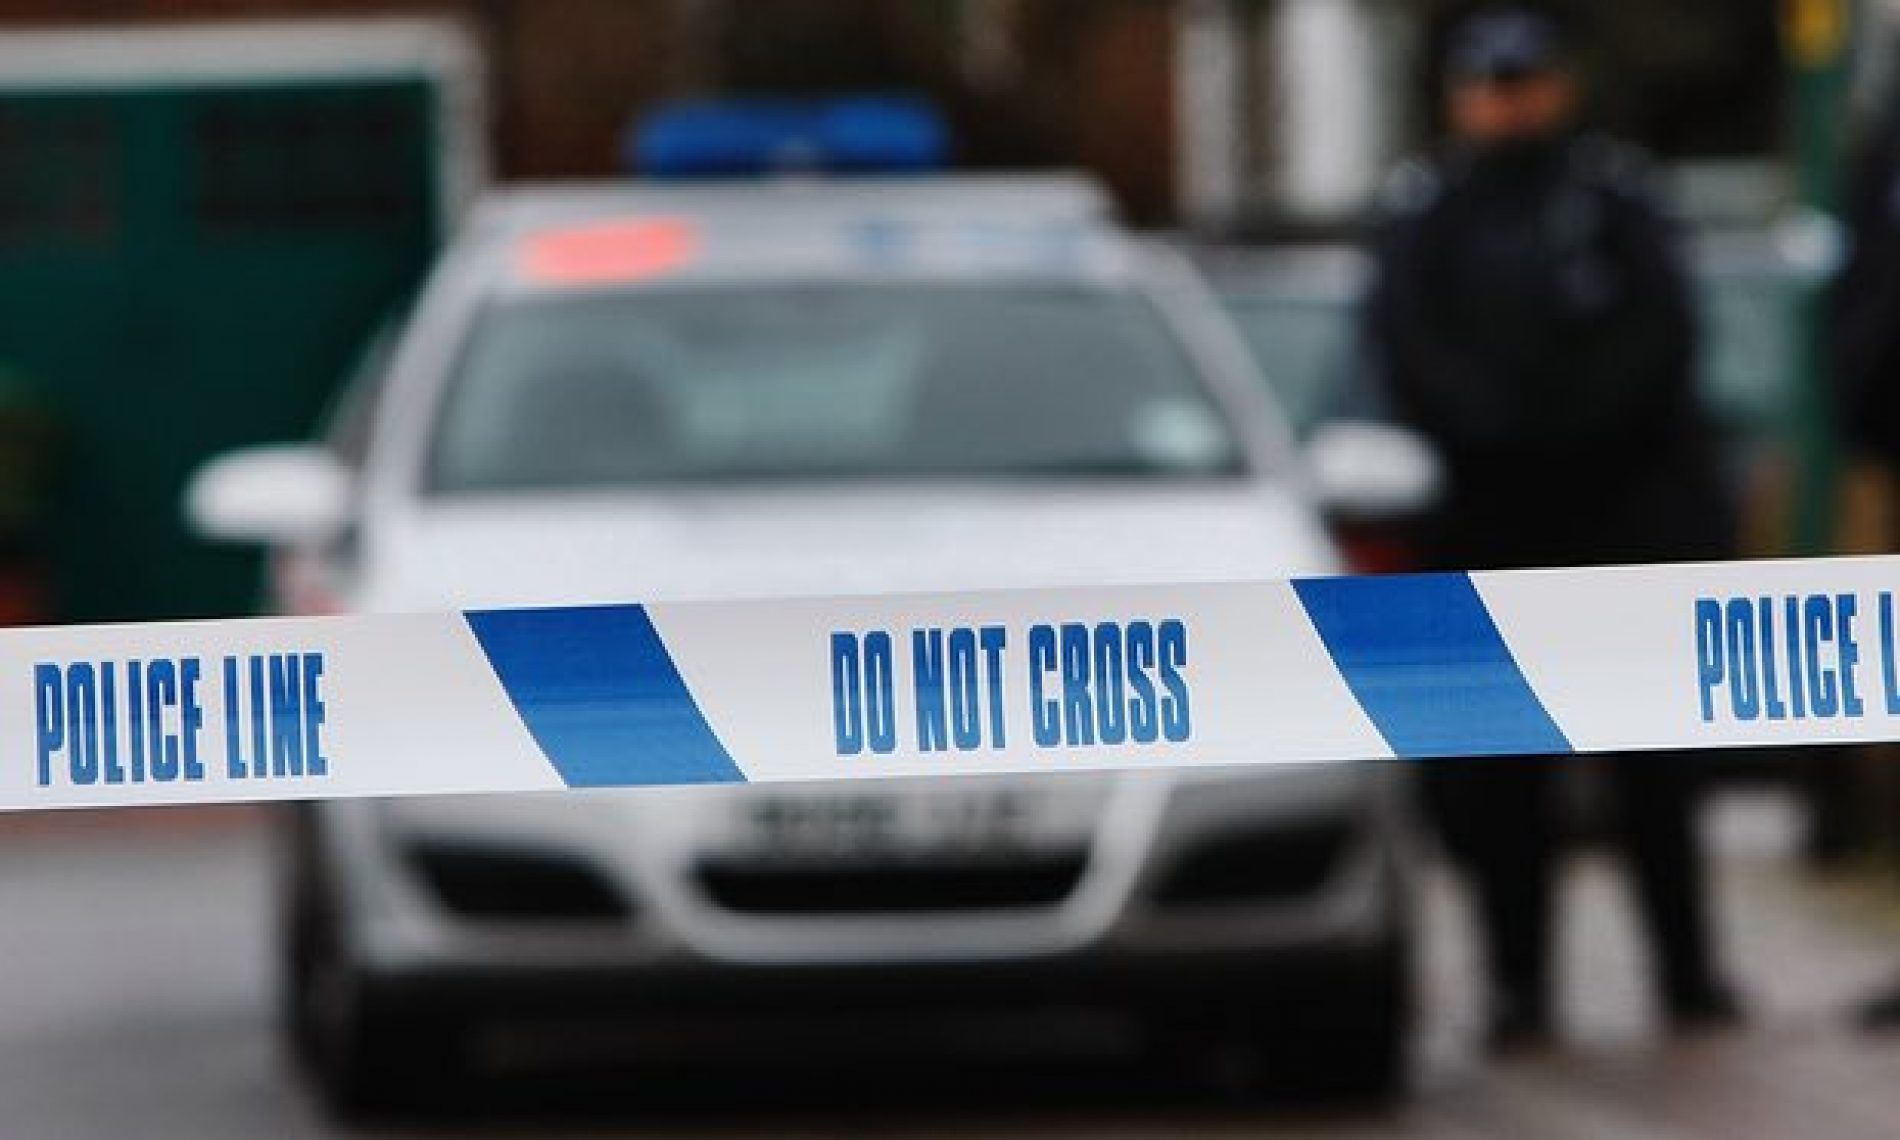 Knife crime up 22% in England and Wales